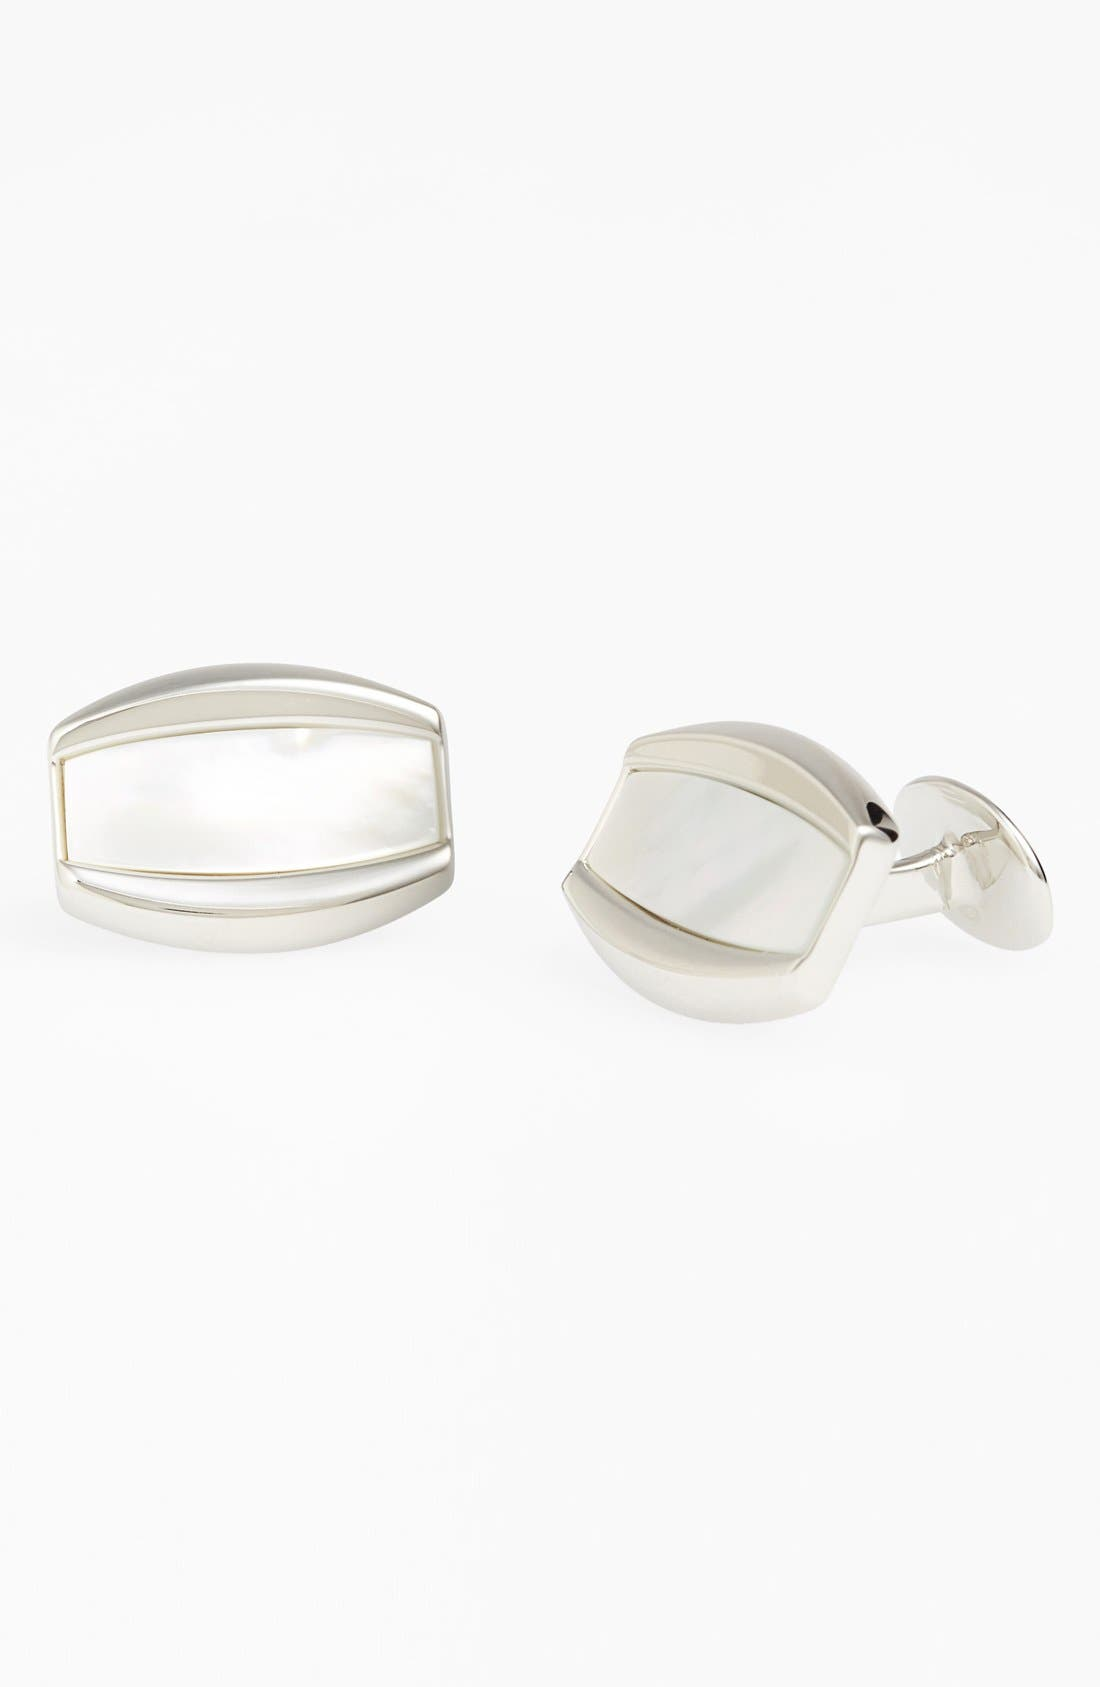 Mother of Pearl Cuff Links,                             Main thumbnail 1, color,                             040